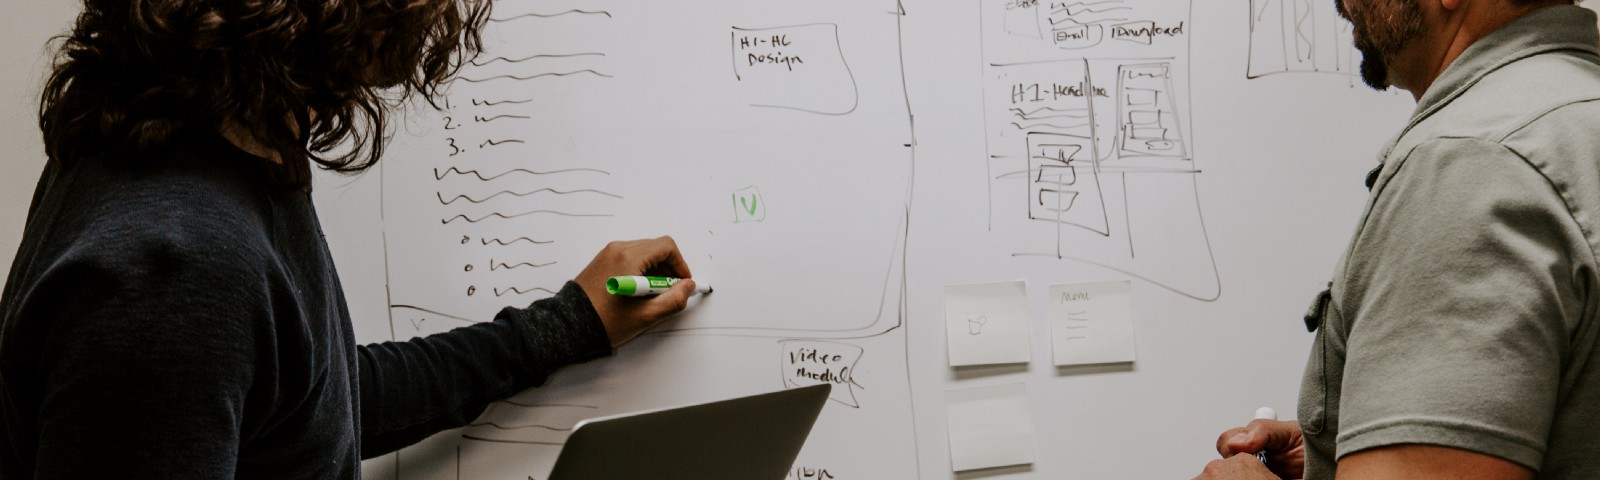 Two designers collaborating using a whiteboard